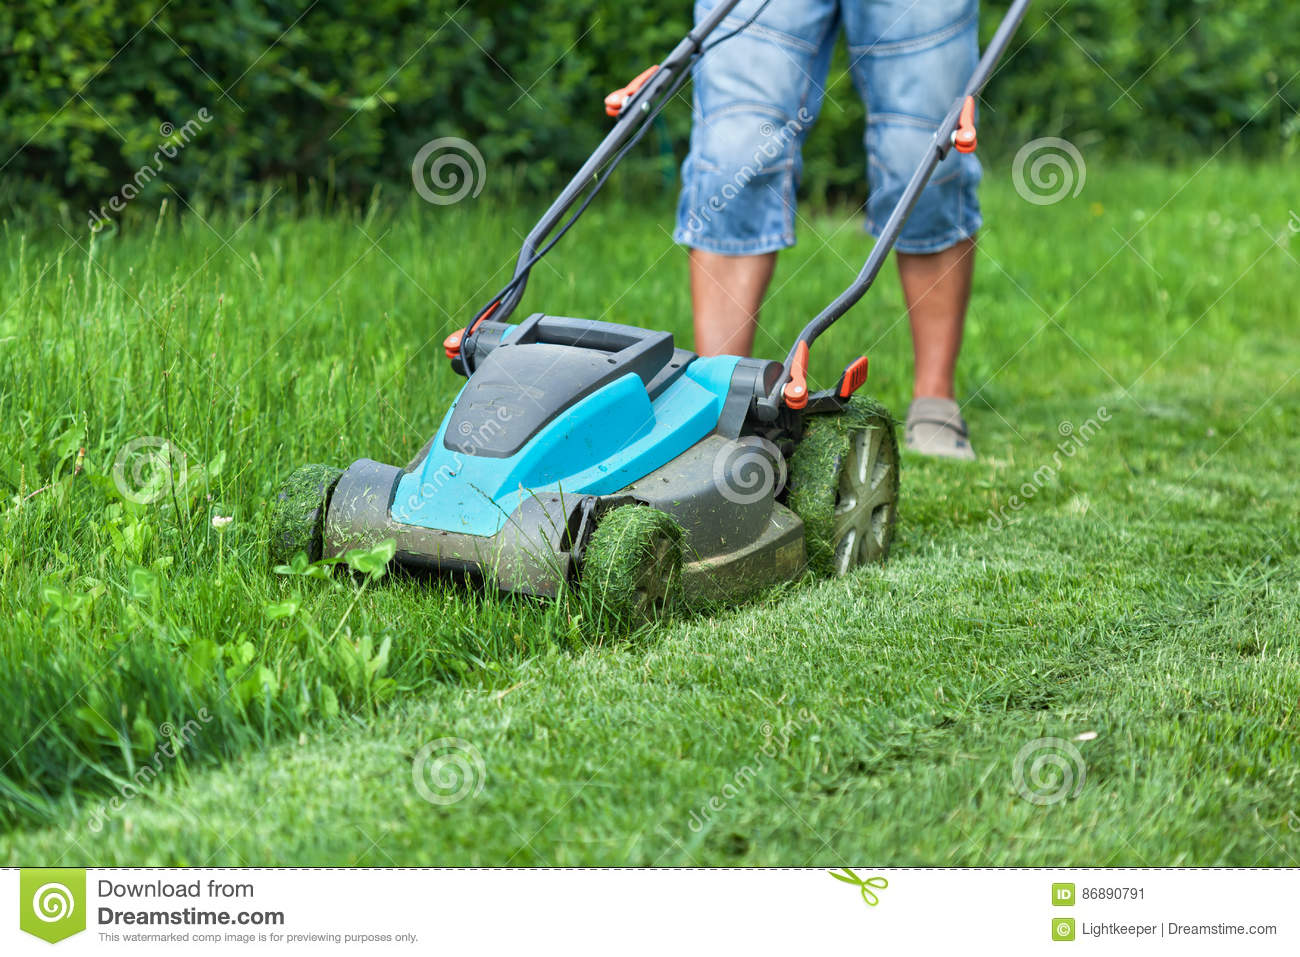 Lawn mower man vector illustration for Lawn mower cutting grass